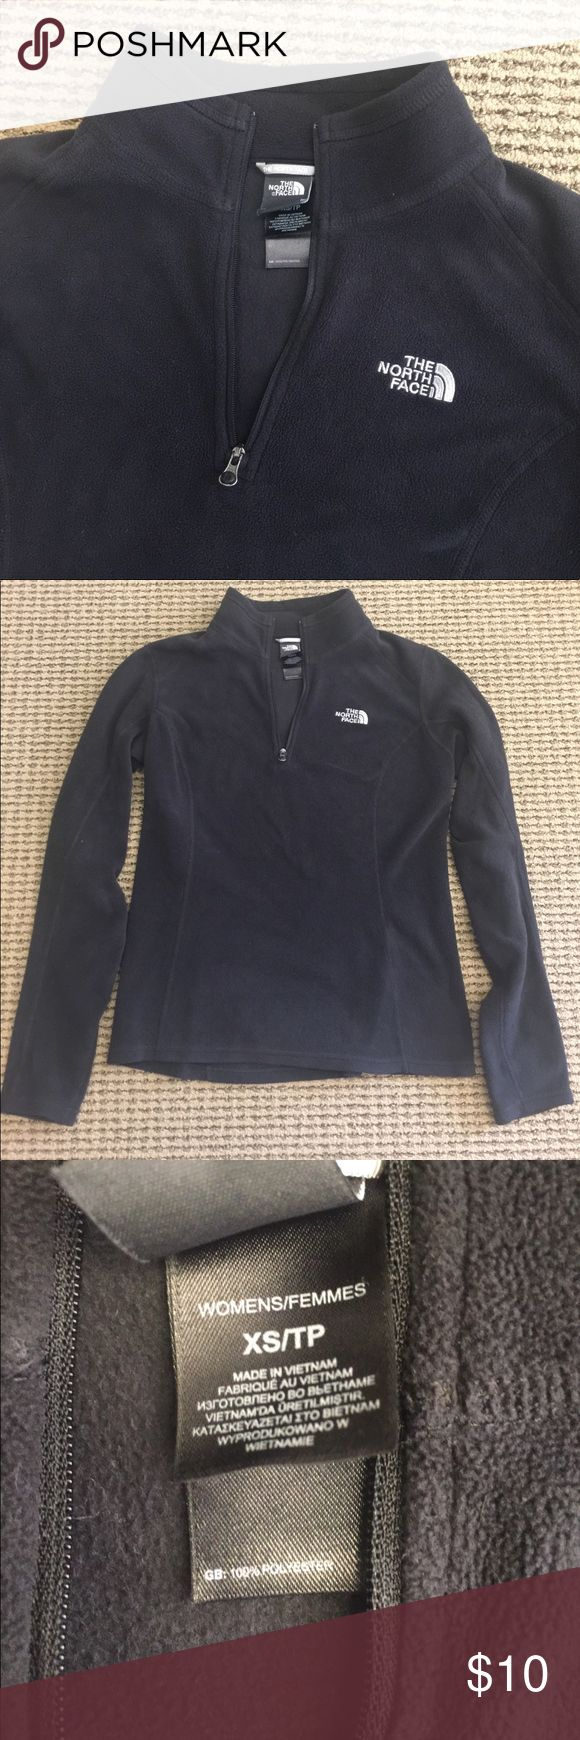 North face 1/4 zip fleece women's xs. Black North face women 1/4 zip fleece. Women's xs. Great used condition. Bundle for discount. North Face Jackets & Coats